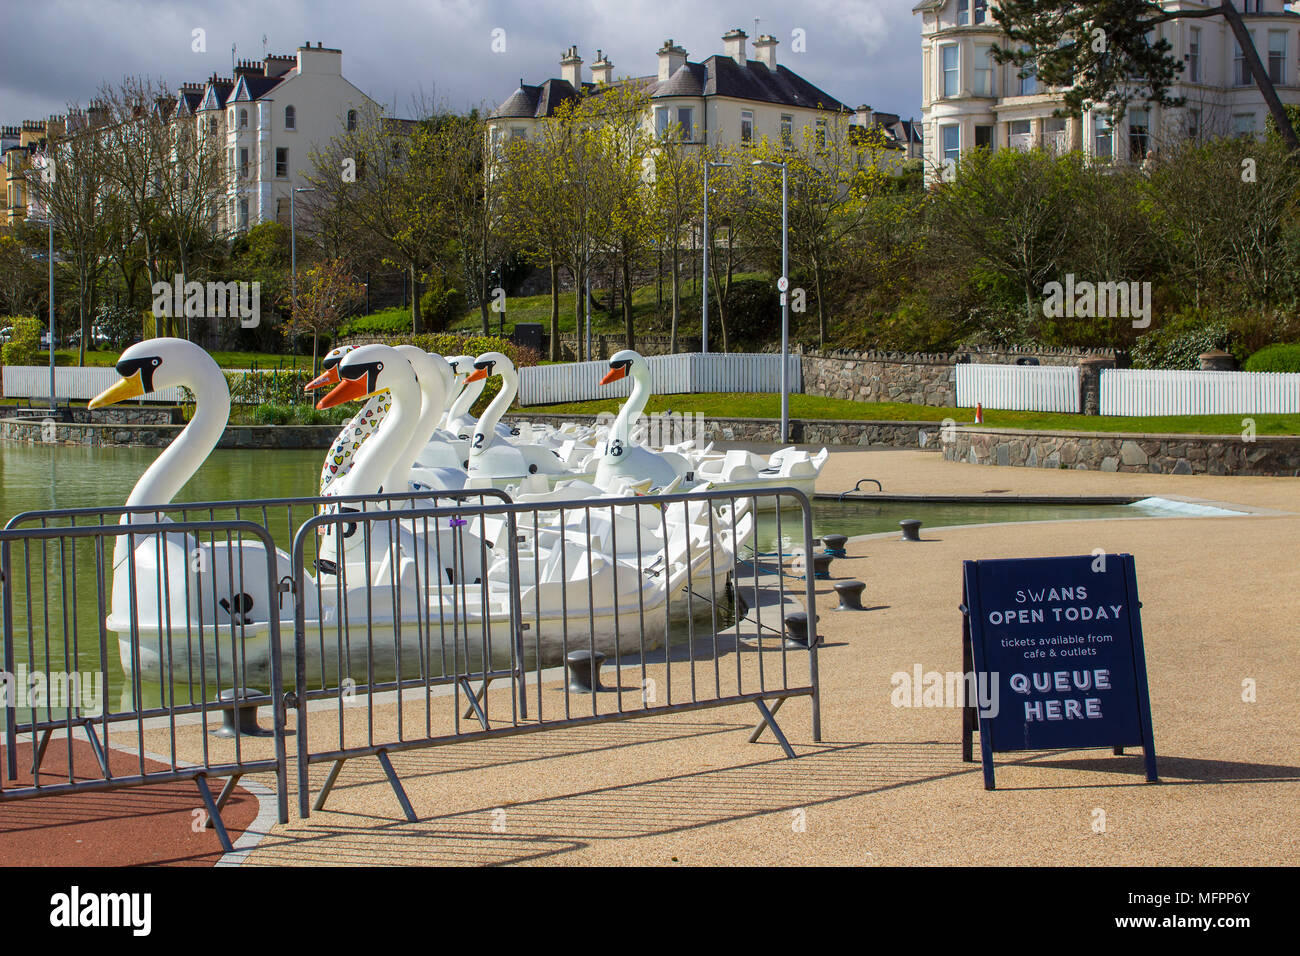 26 April 2018 Bangor Northern Ireland. Swan themed pedalos for hire in the popular Pickie  Centre sit empty on a cool spring morning - Stock Image